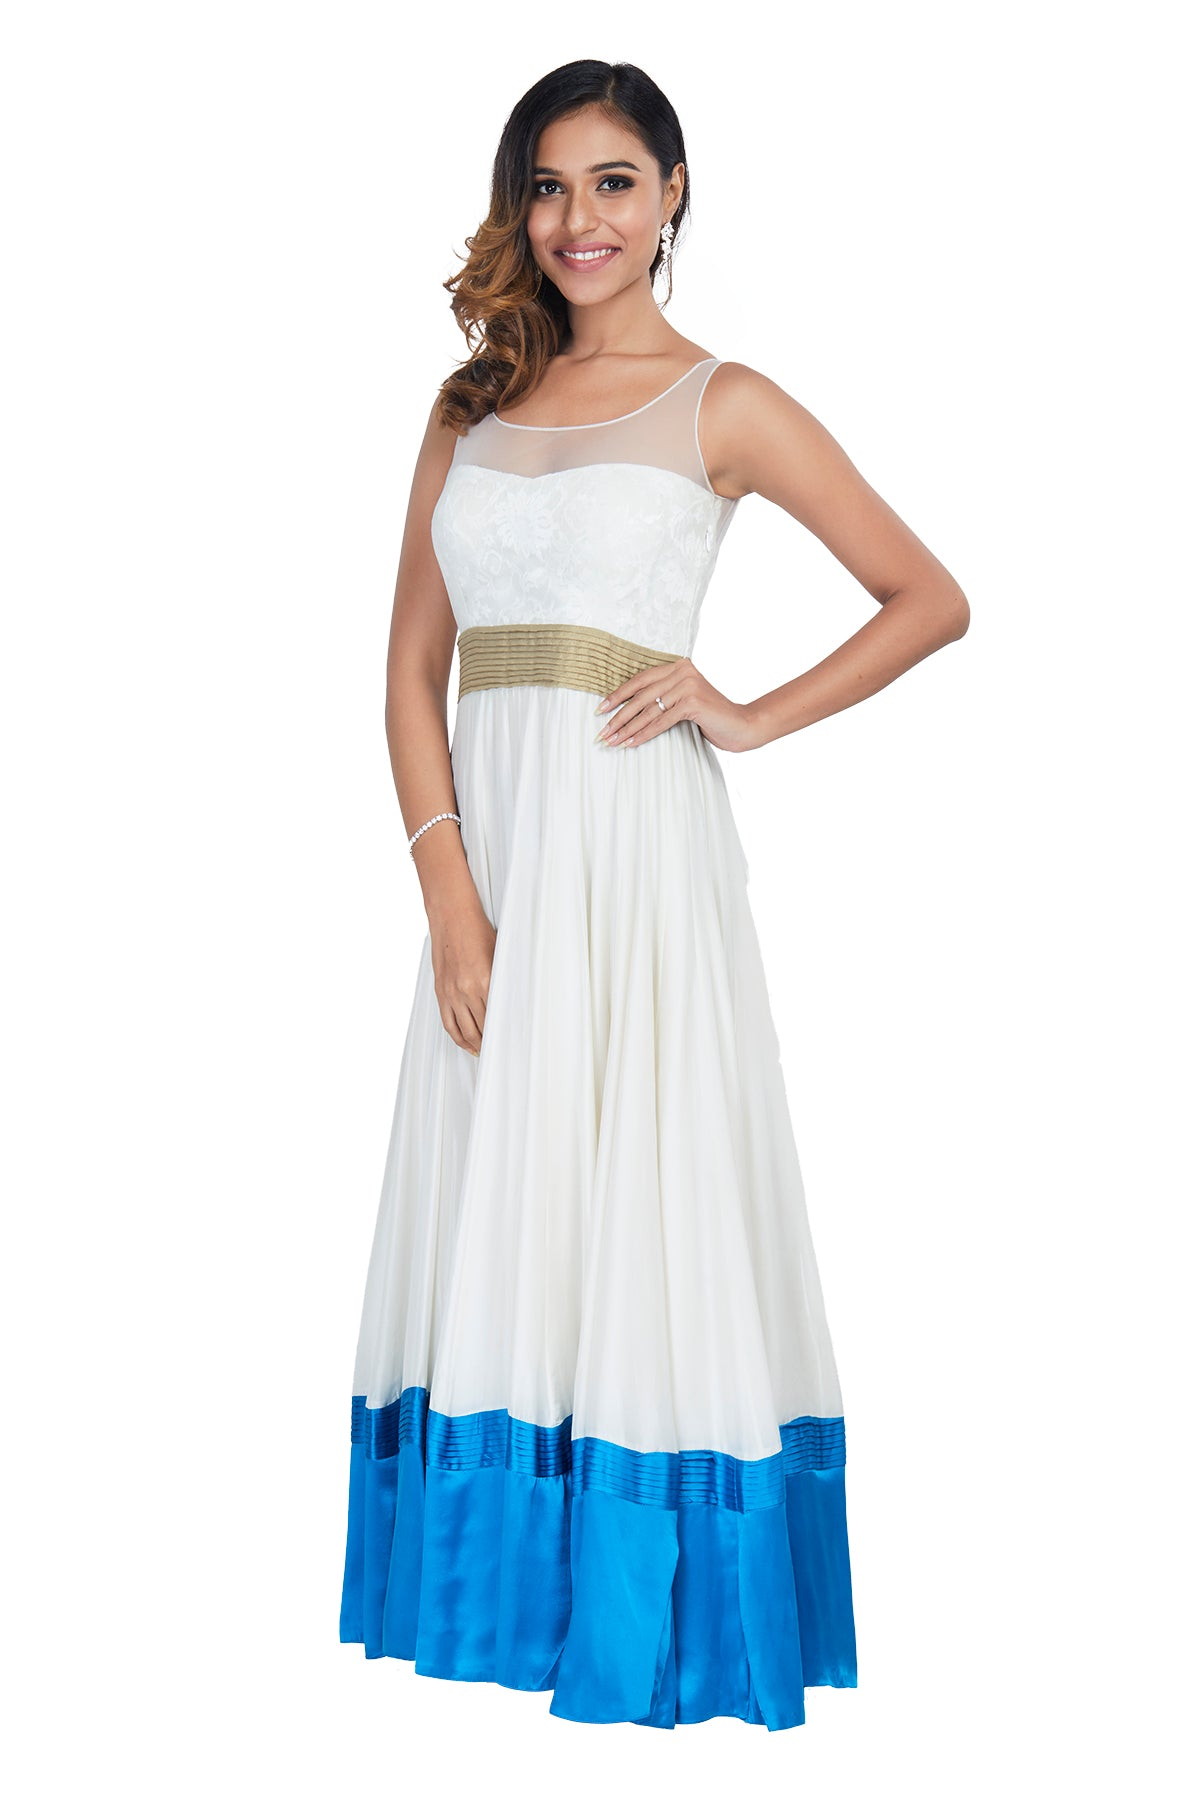 What you see is what you get in this gorgeous understated white gown with a pop of blue colour at the hem.